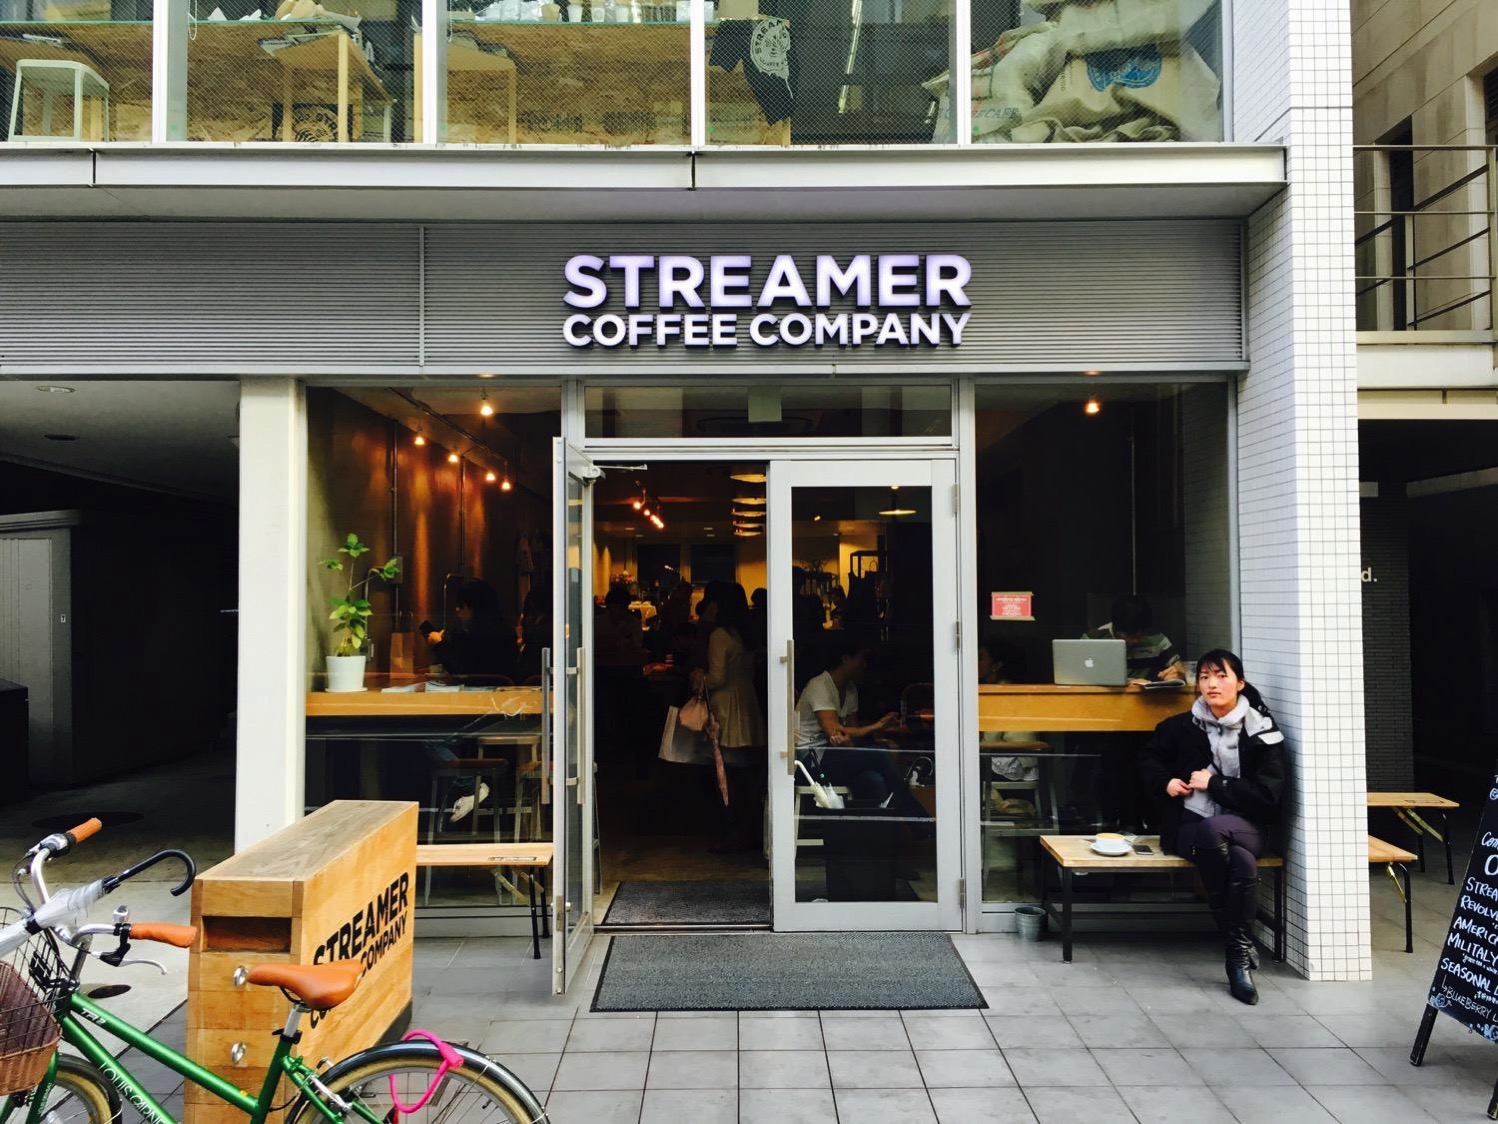 Streamer coffee company1